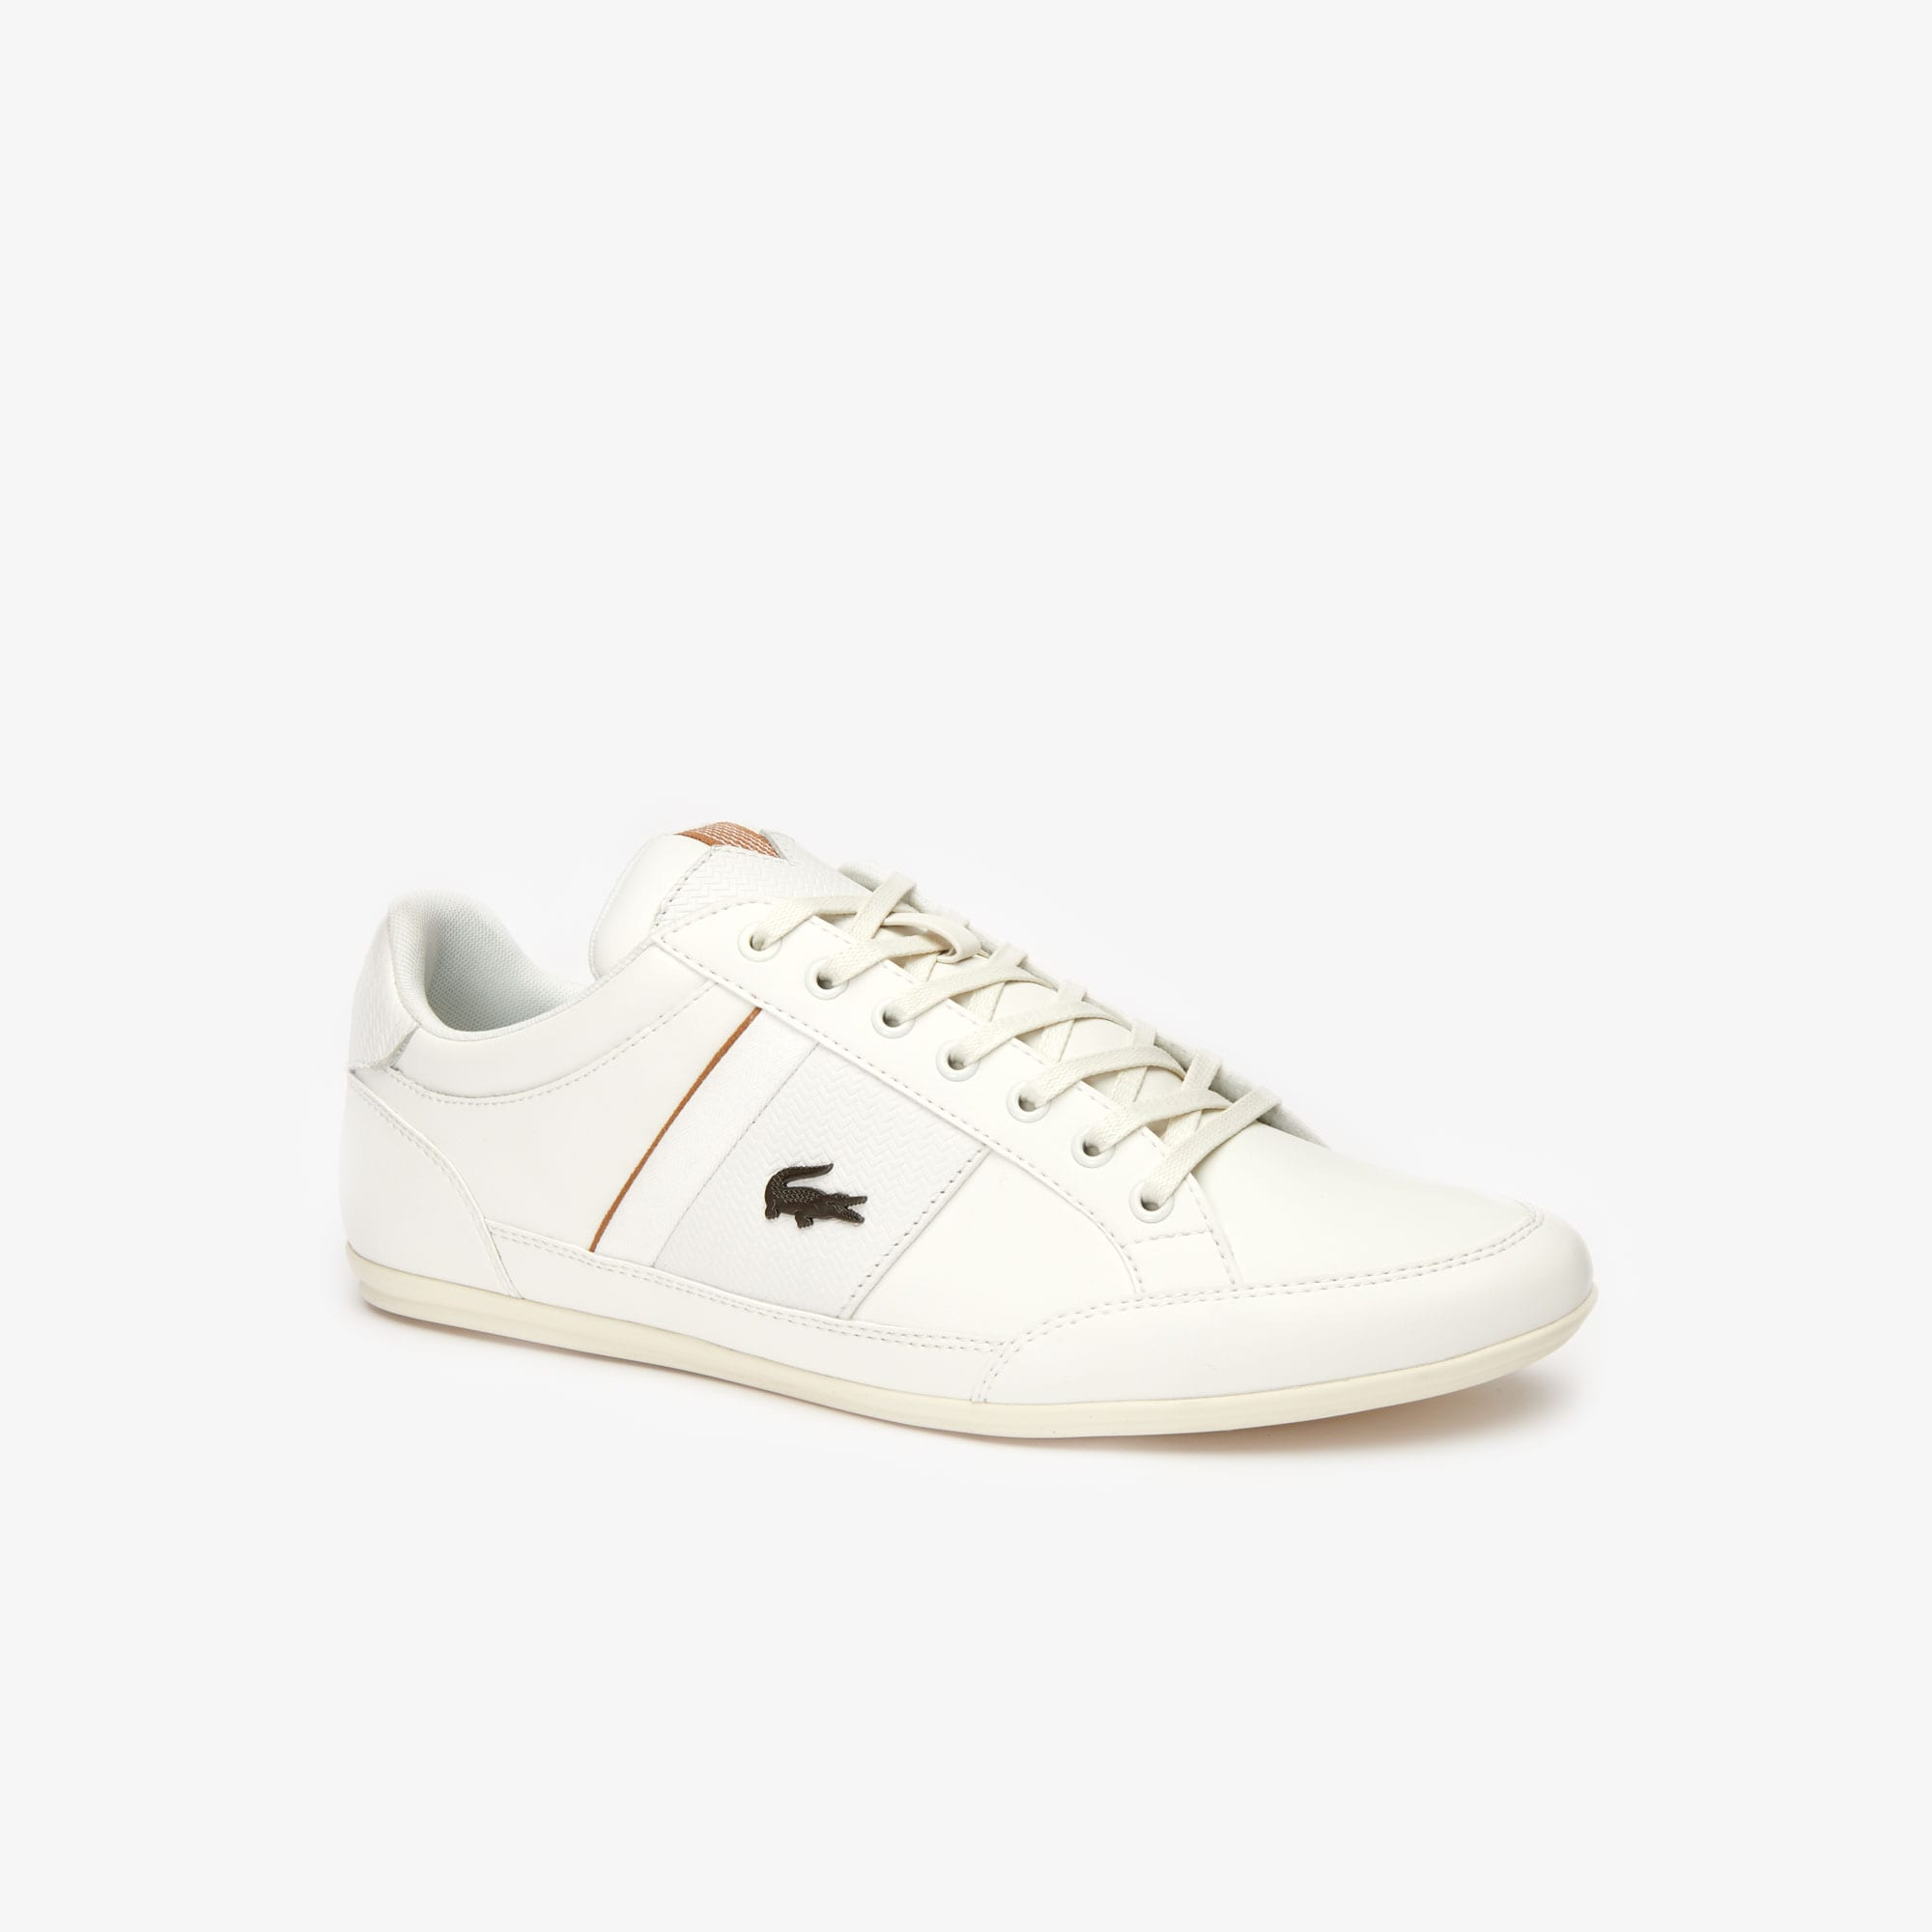 size 40 b883a a820f Lacoste shoes for men: Sneakers, Trainers, Boots | LACOSTE